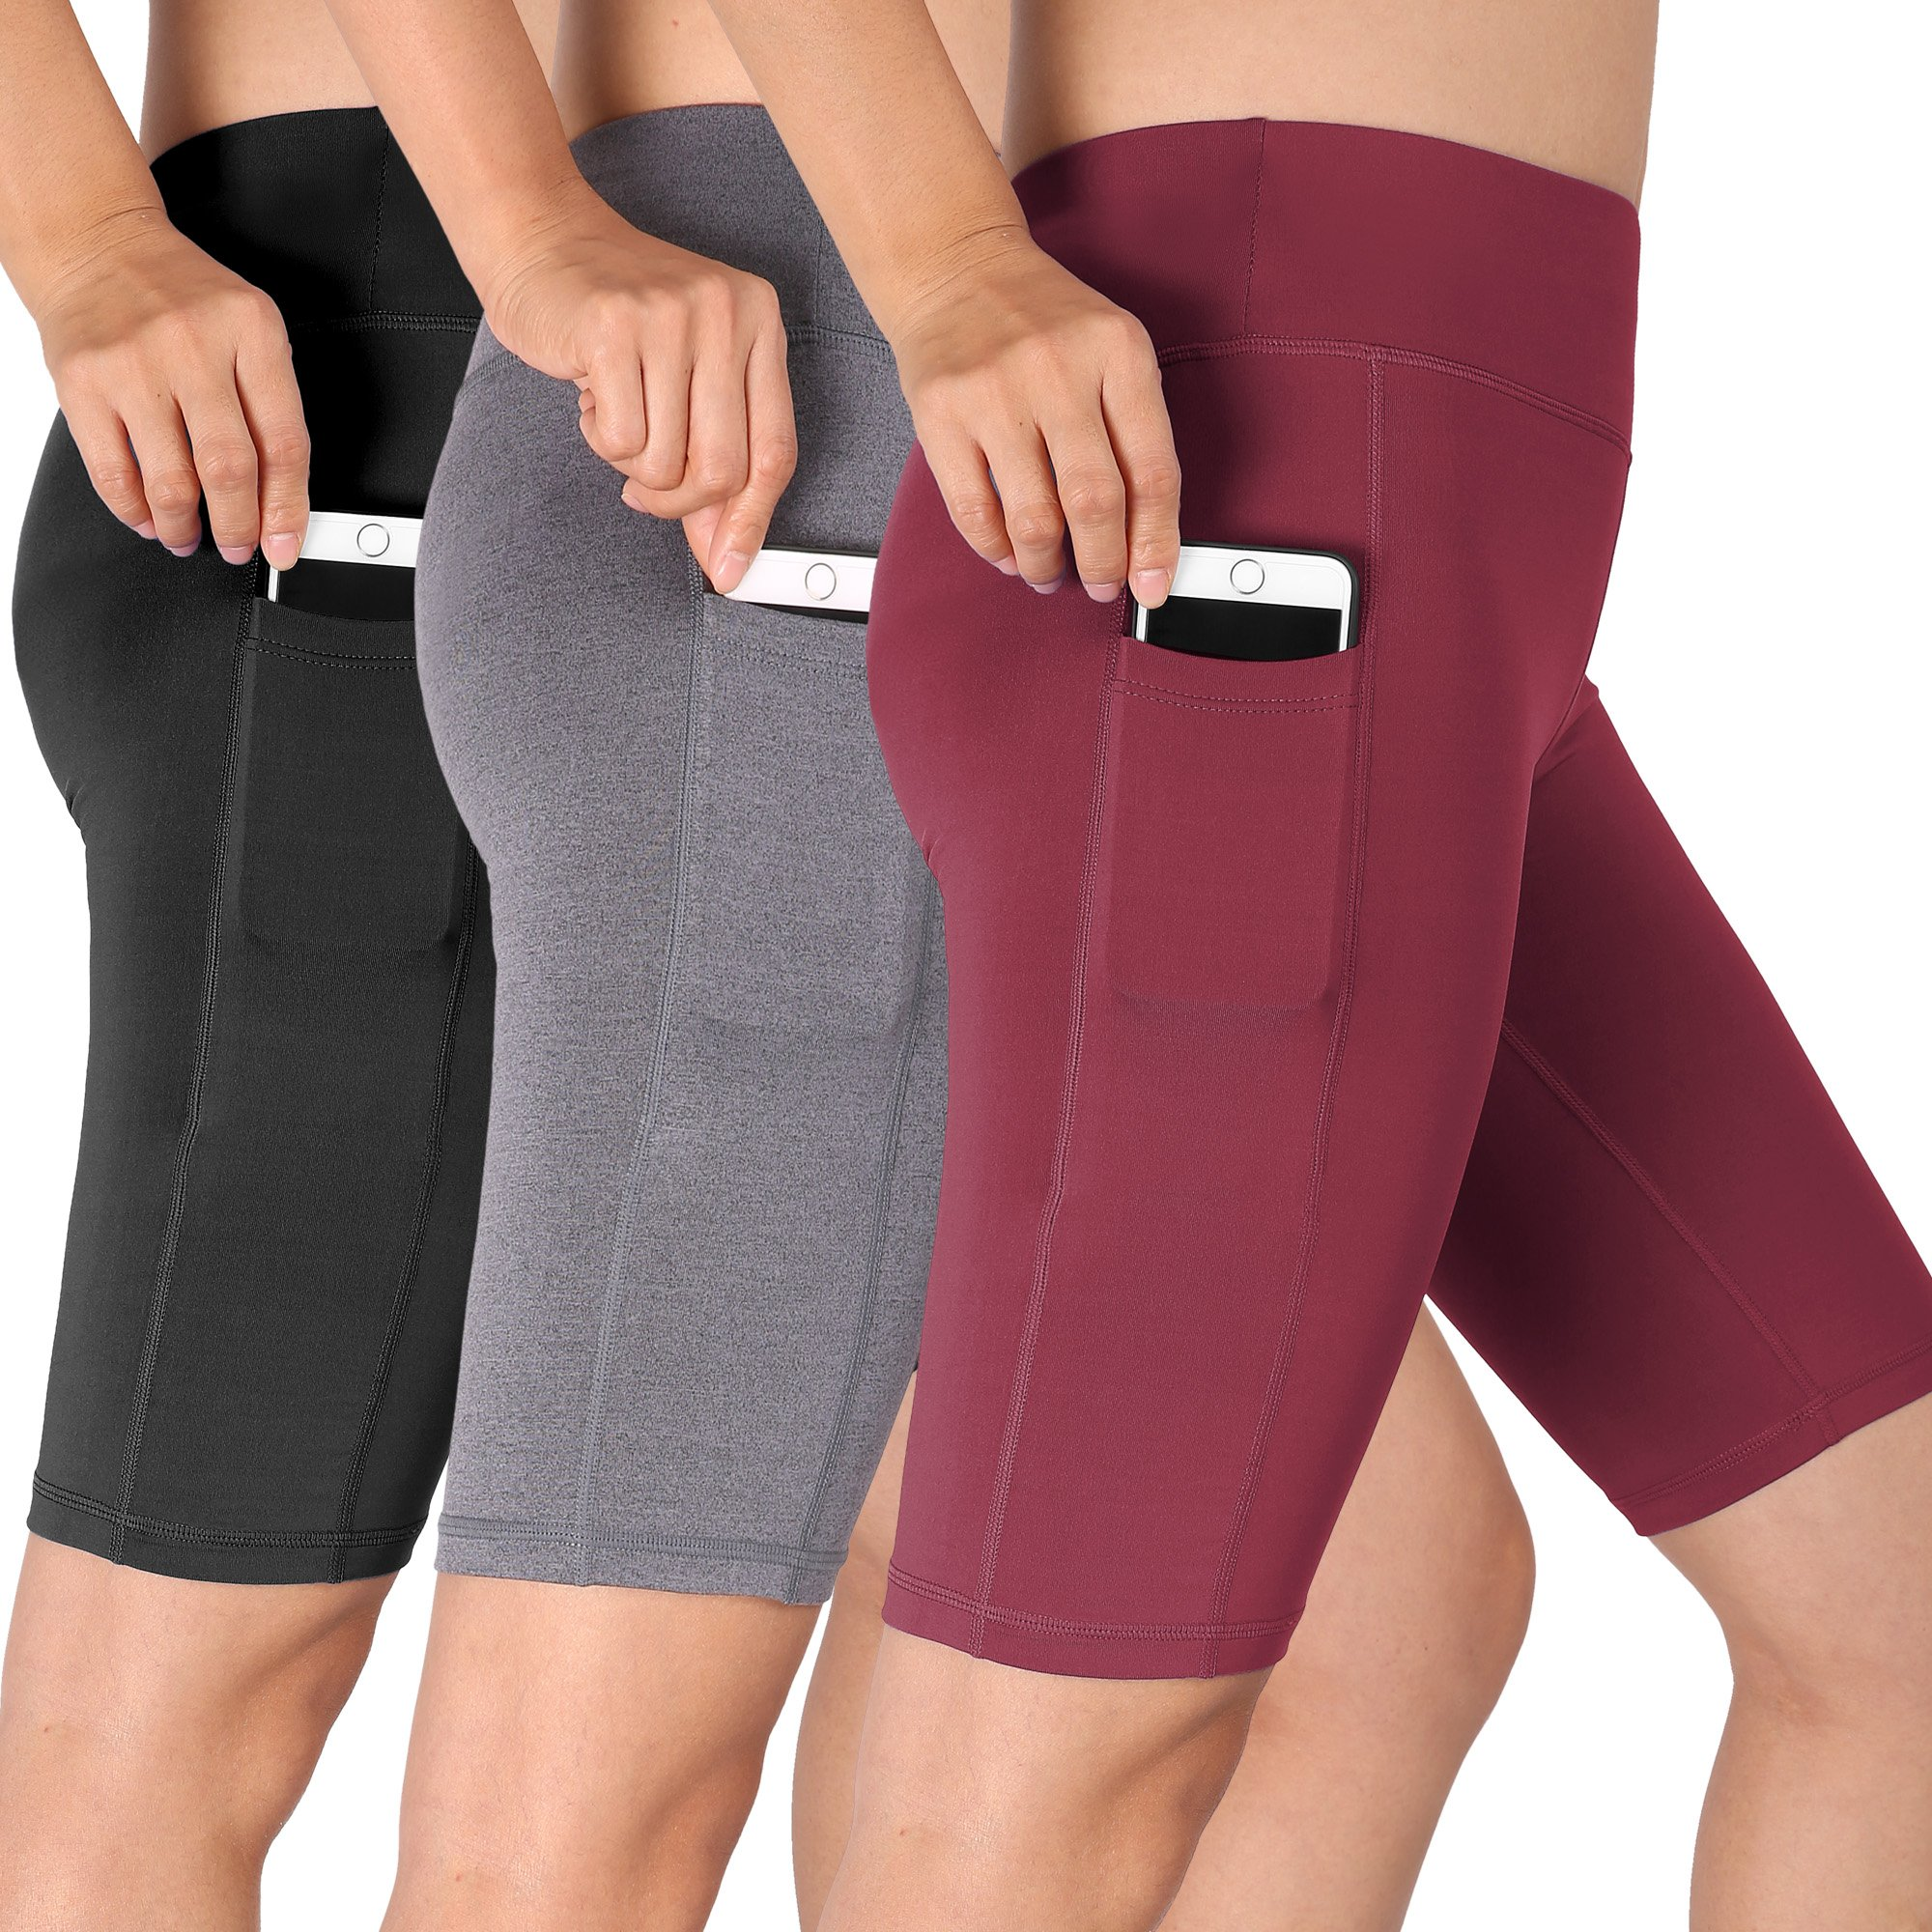 Cadmus Women's High Waist Athletic Running Workout Shorts with Pocket,3 Pack,06,Black,Grey,Wine Red,XX-Large